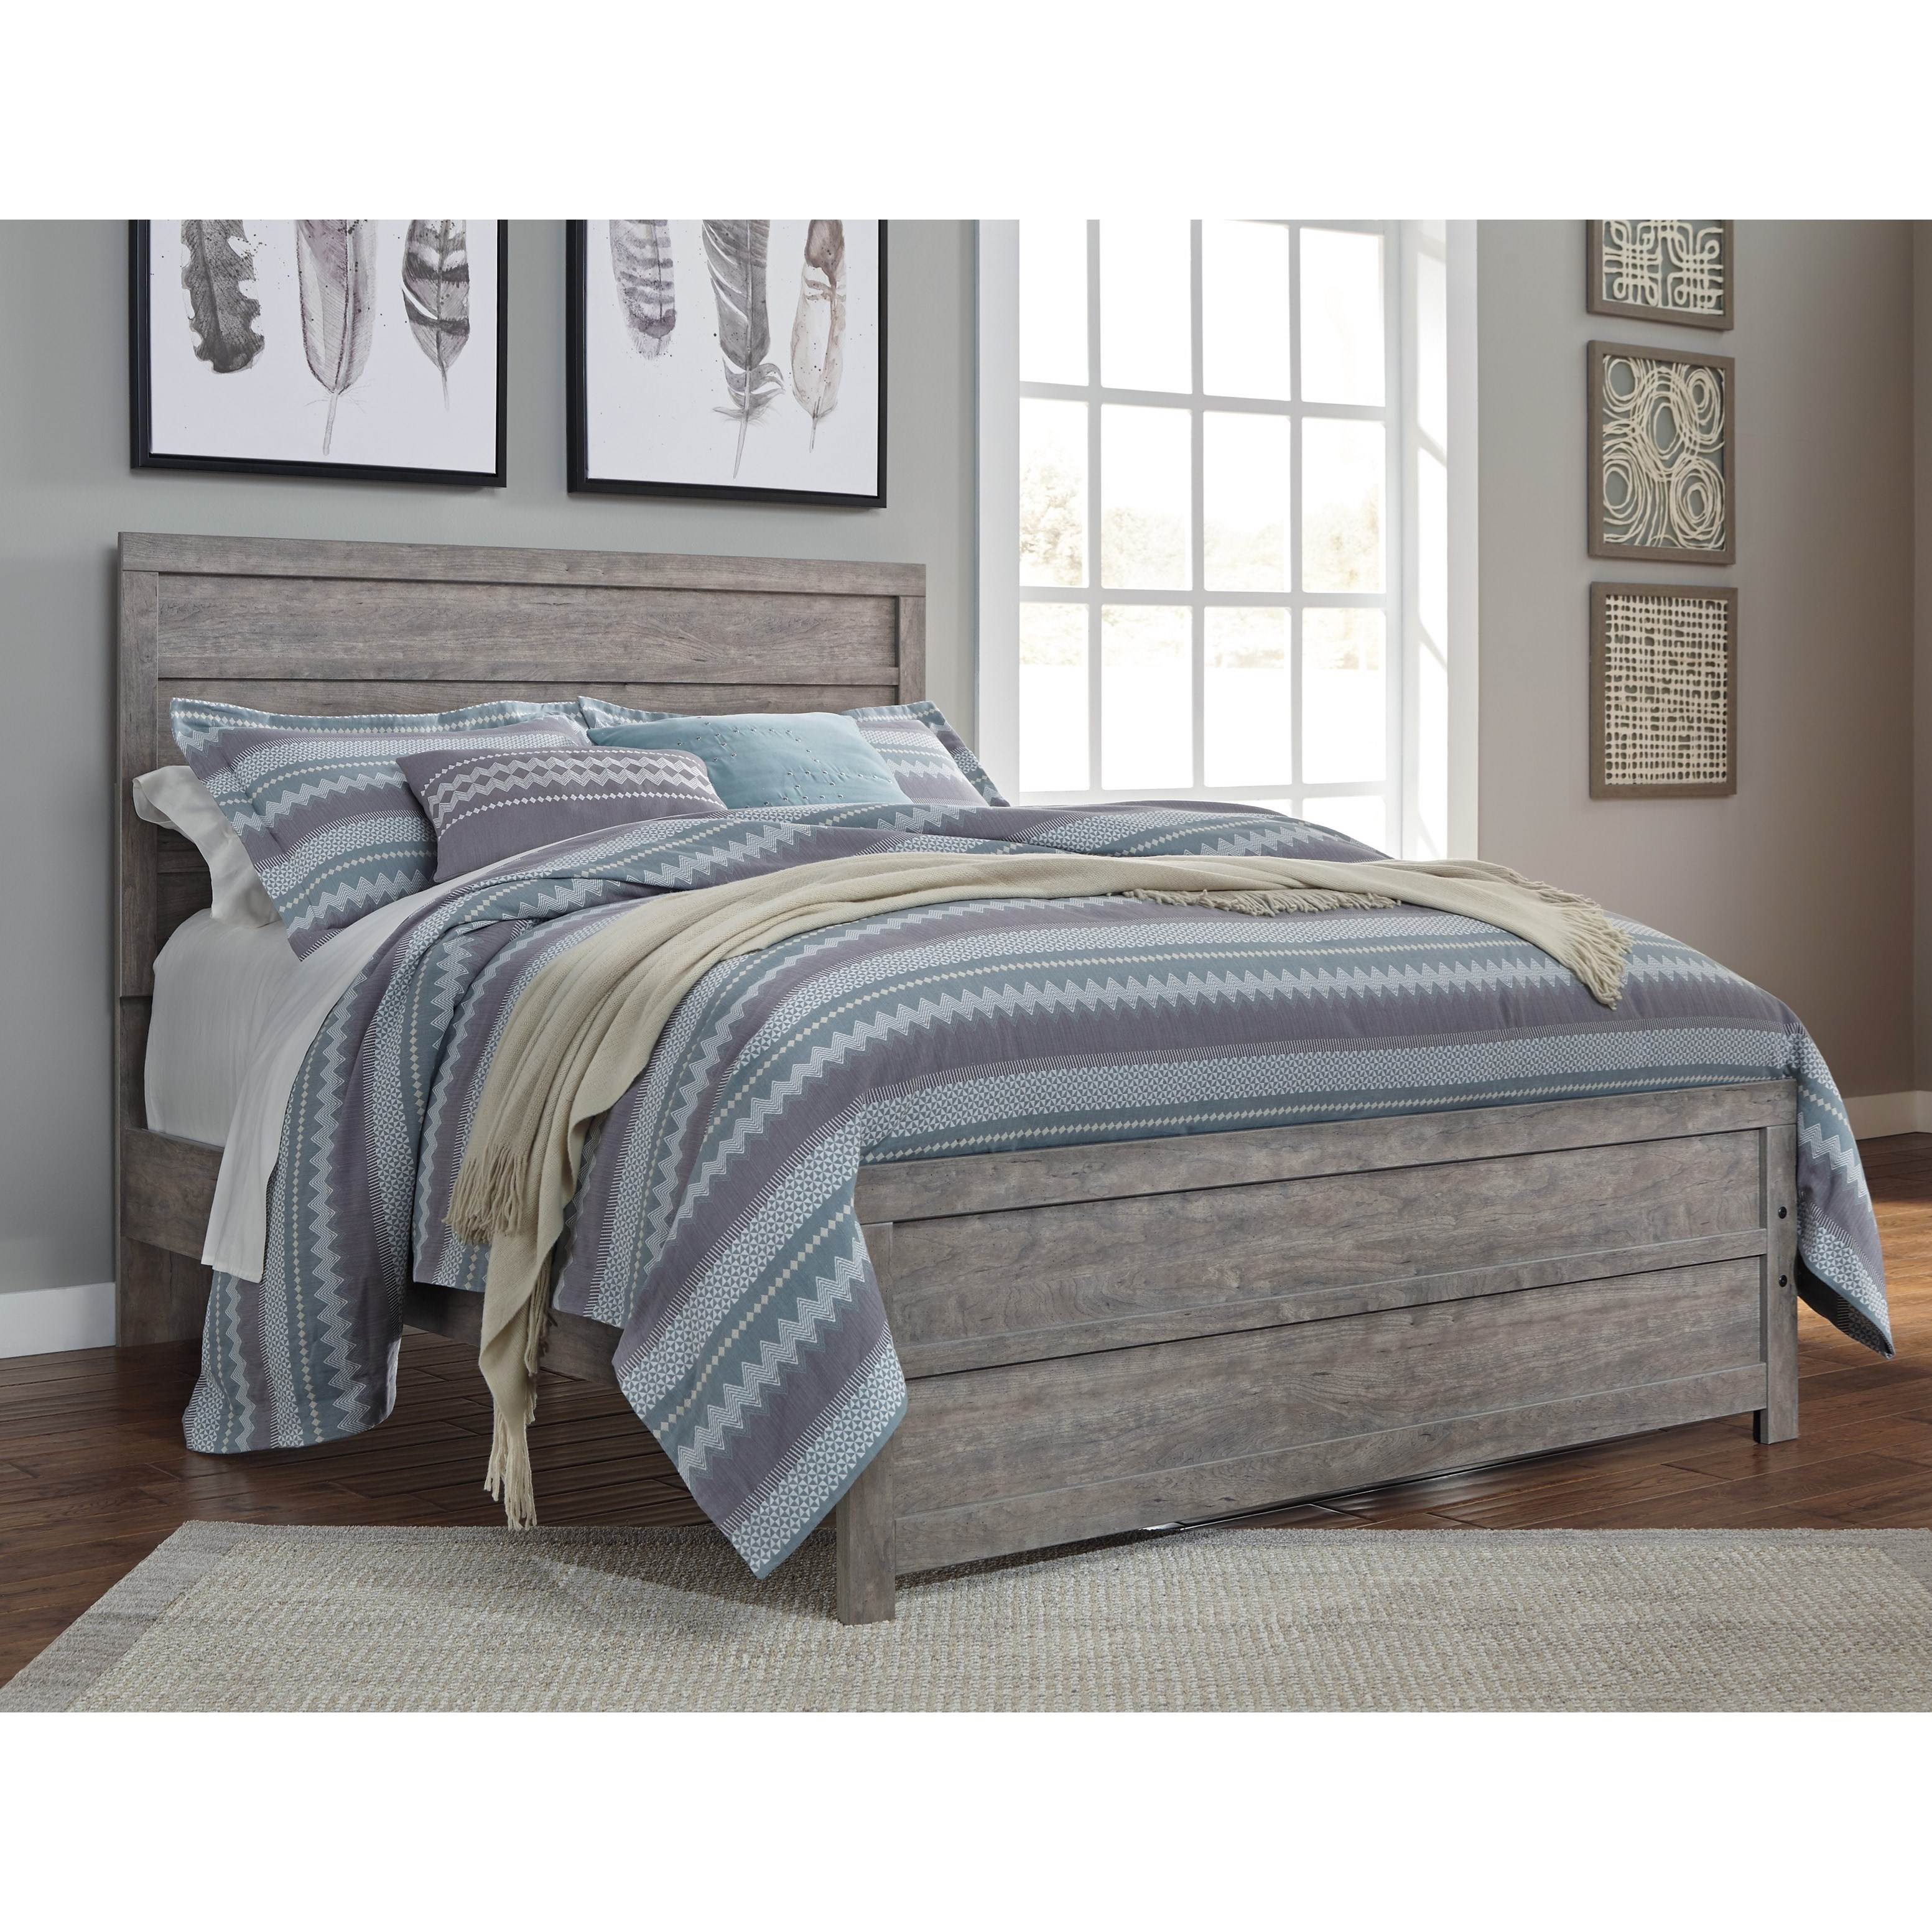 Culverbach Queen Panel Bed by Vendor 3 at Becker Furniture